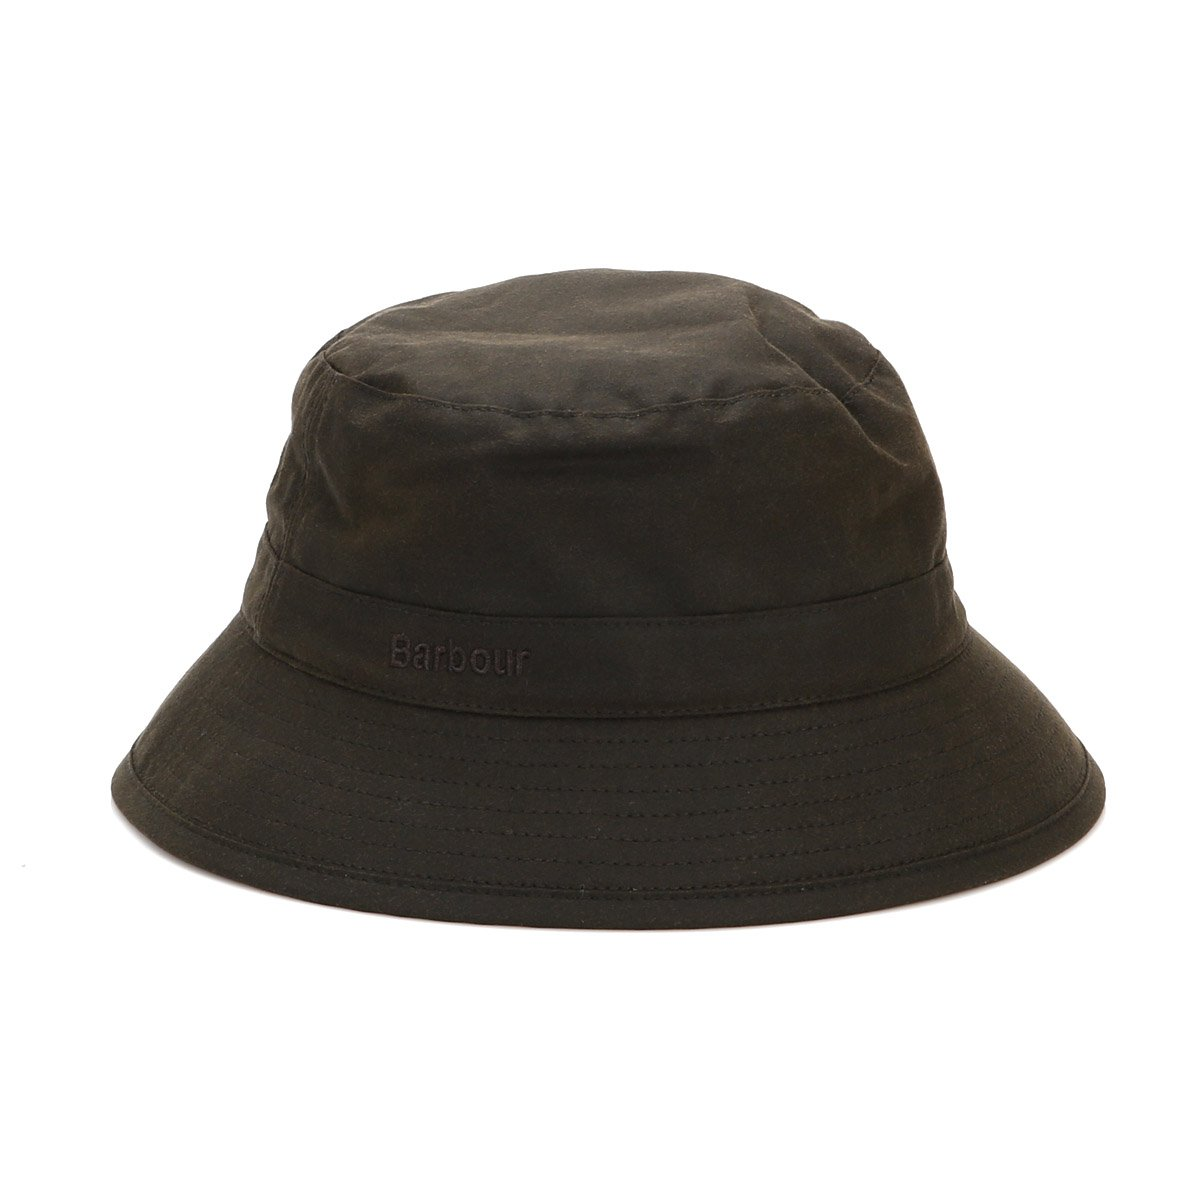 bcc63a6bfe457 Barbour Men's Waxed Sports Hat - Olive: Amazon.co.uk: Clothing